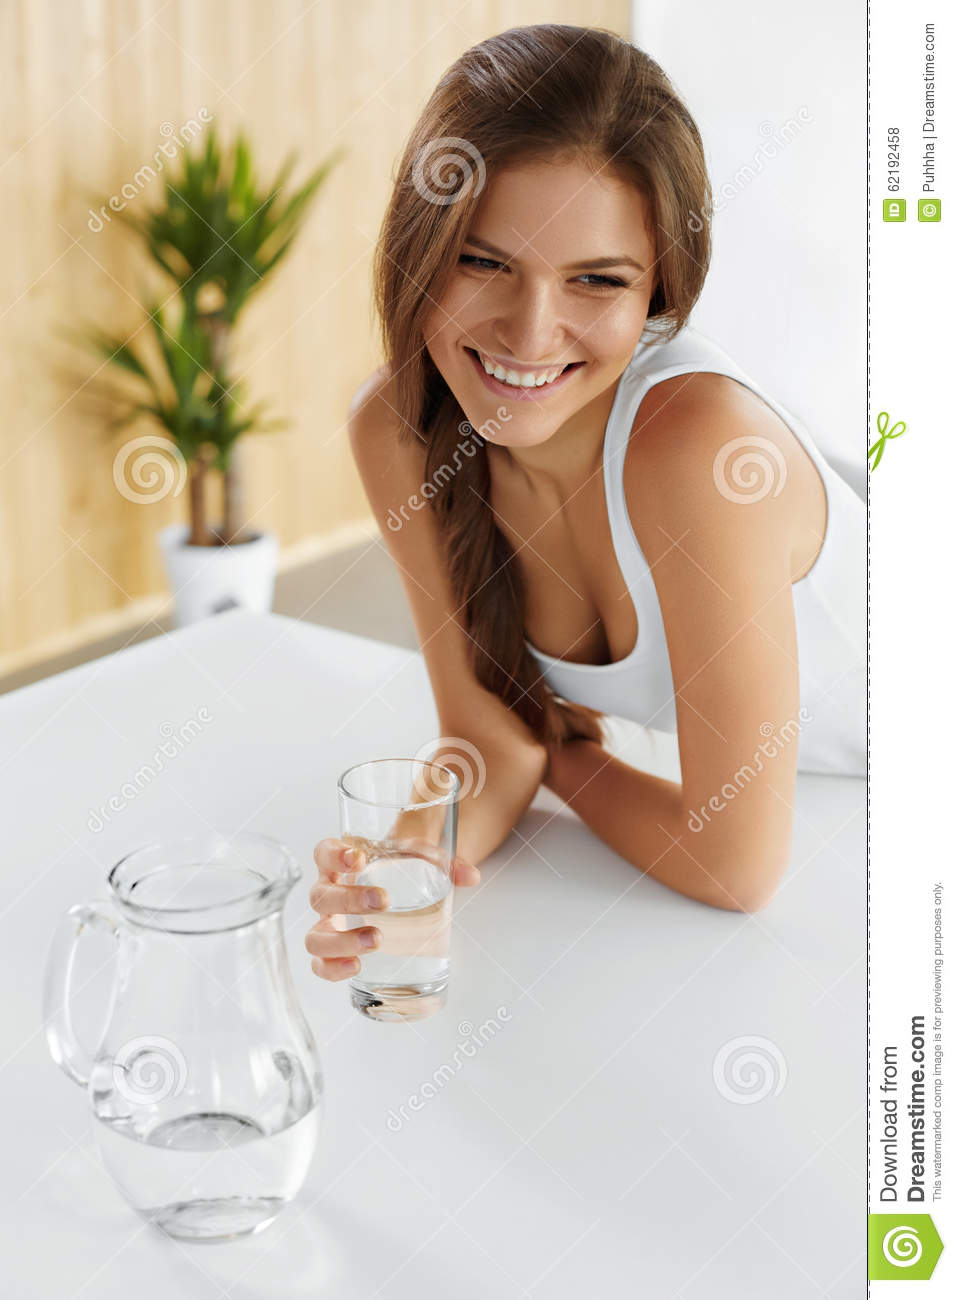 Drinks. Happy Girl Drinking Water. Healthcare. Healthy Lifestyle